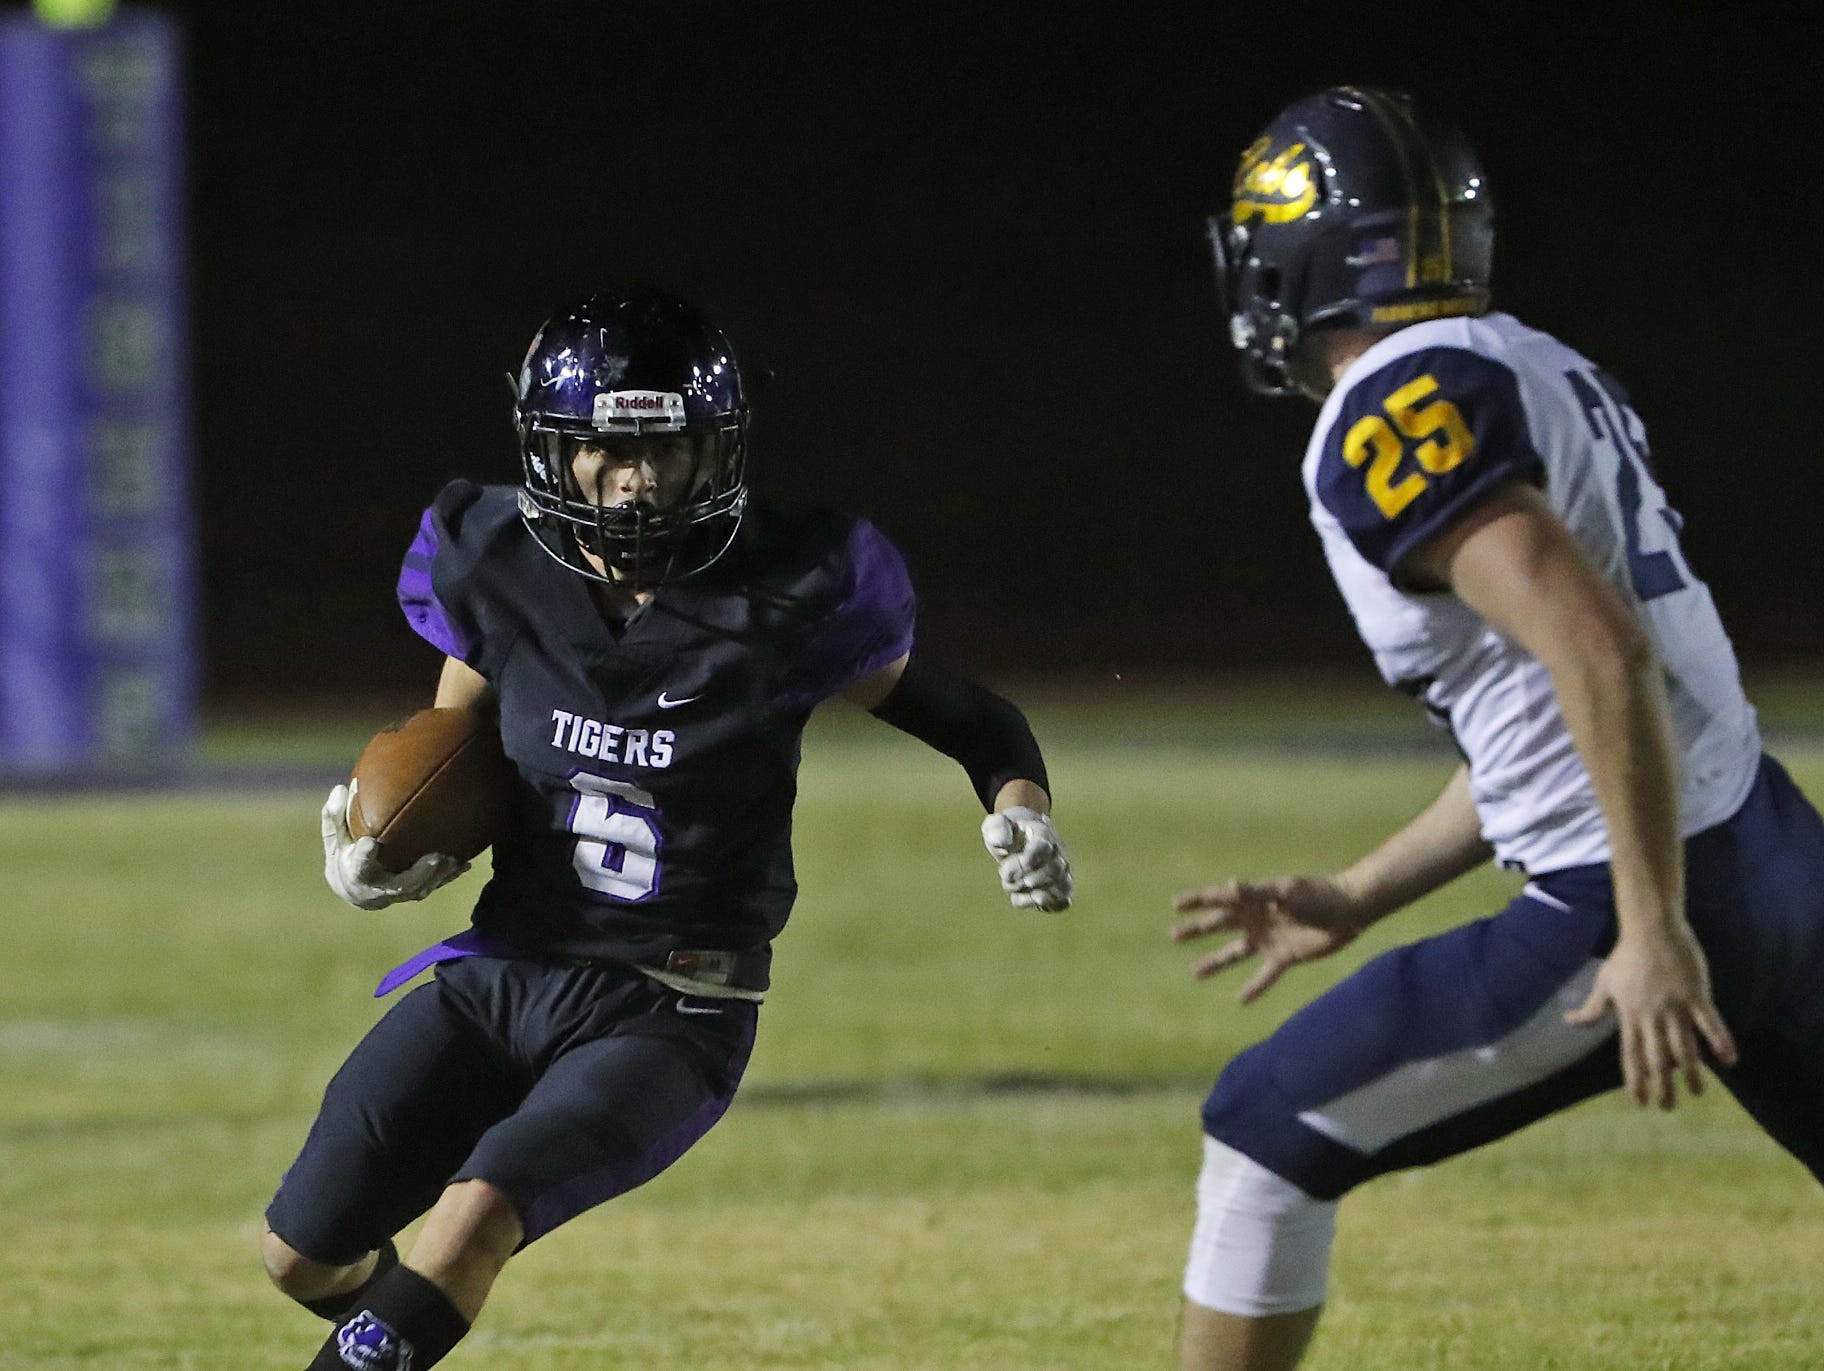 Millennium's Joseph Rosales (6) heads downfield against Flowing Wells' Blake Bishop (25) during the first round of the AIA State Football Playoffs at Millennium High School in Goodyear, Ariz. on Nov. 2, 2018.